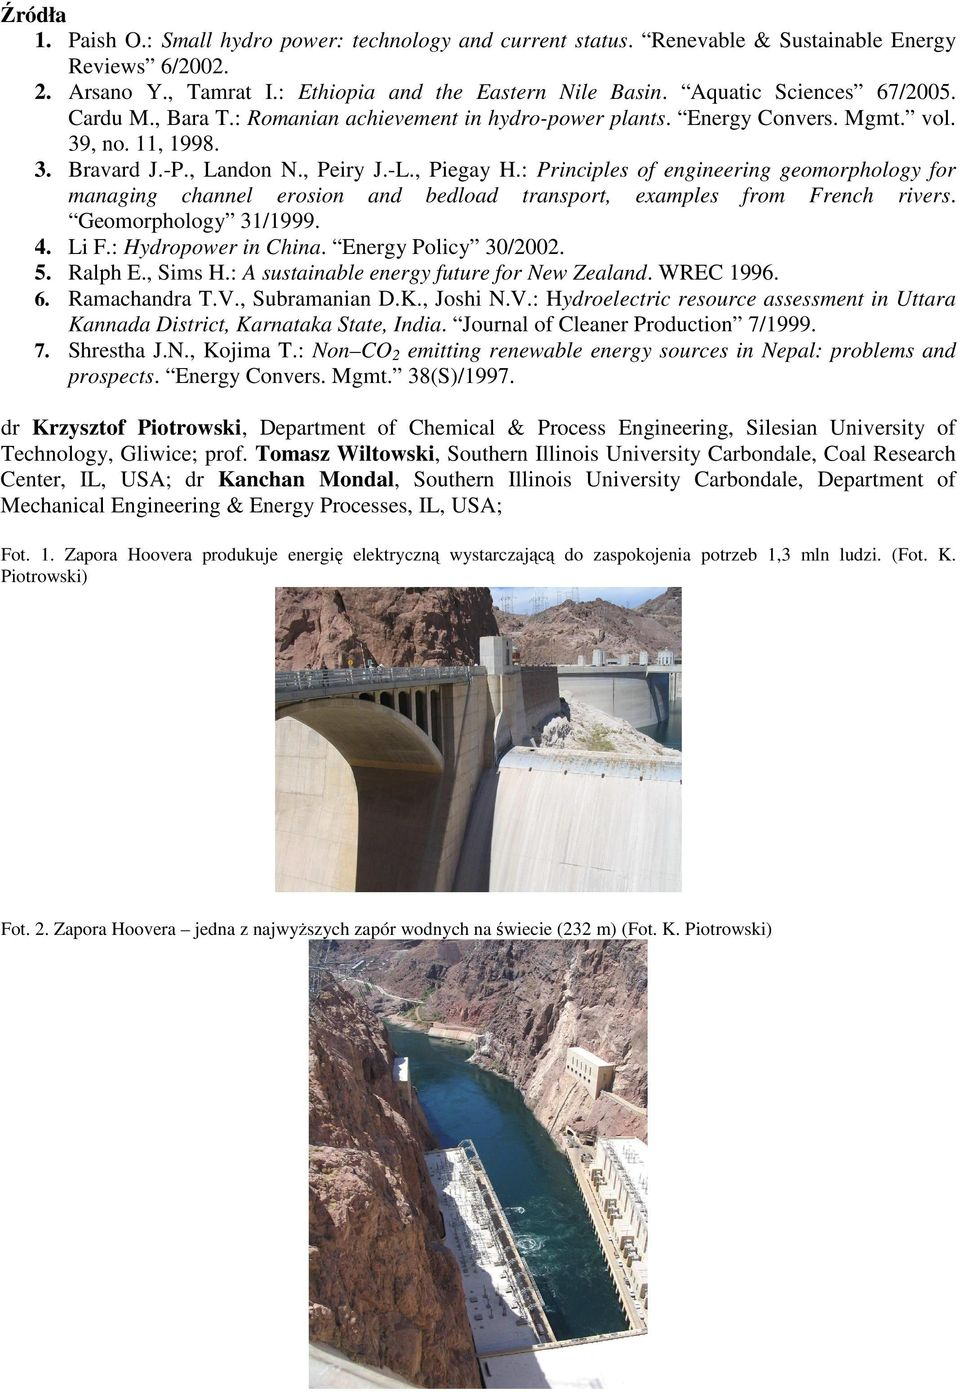 : Principles of engineering geomorphology for managing channel erosion and bedload transport, examples from French rivers. Geomorphology 31/1999. 4. Li F.: Hydropower in China. Energy Policy 30/2002.